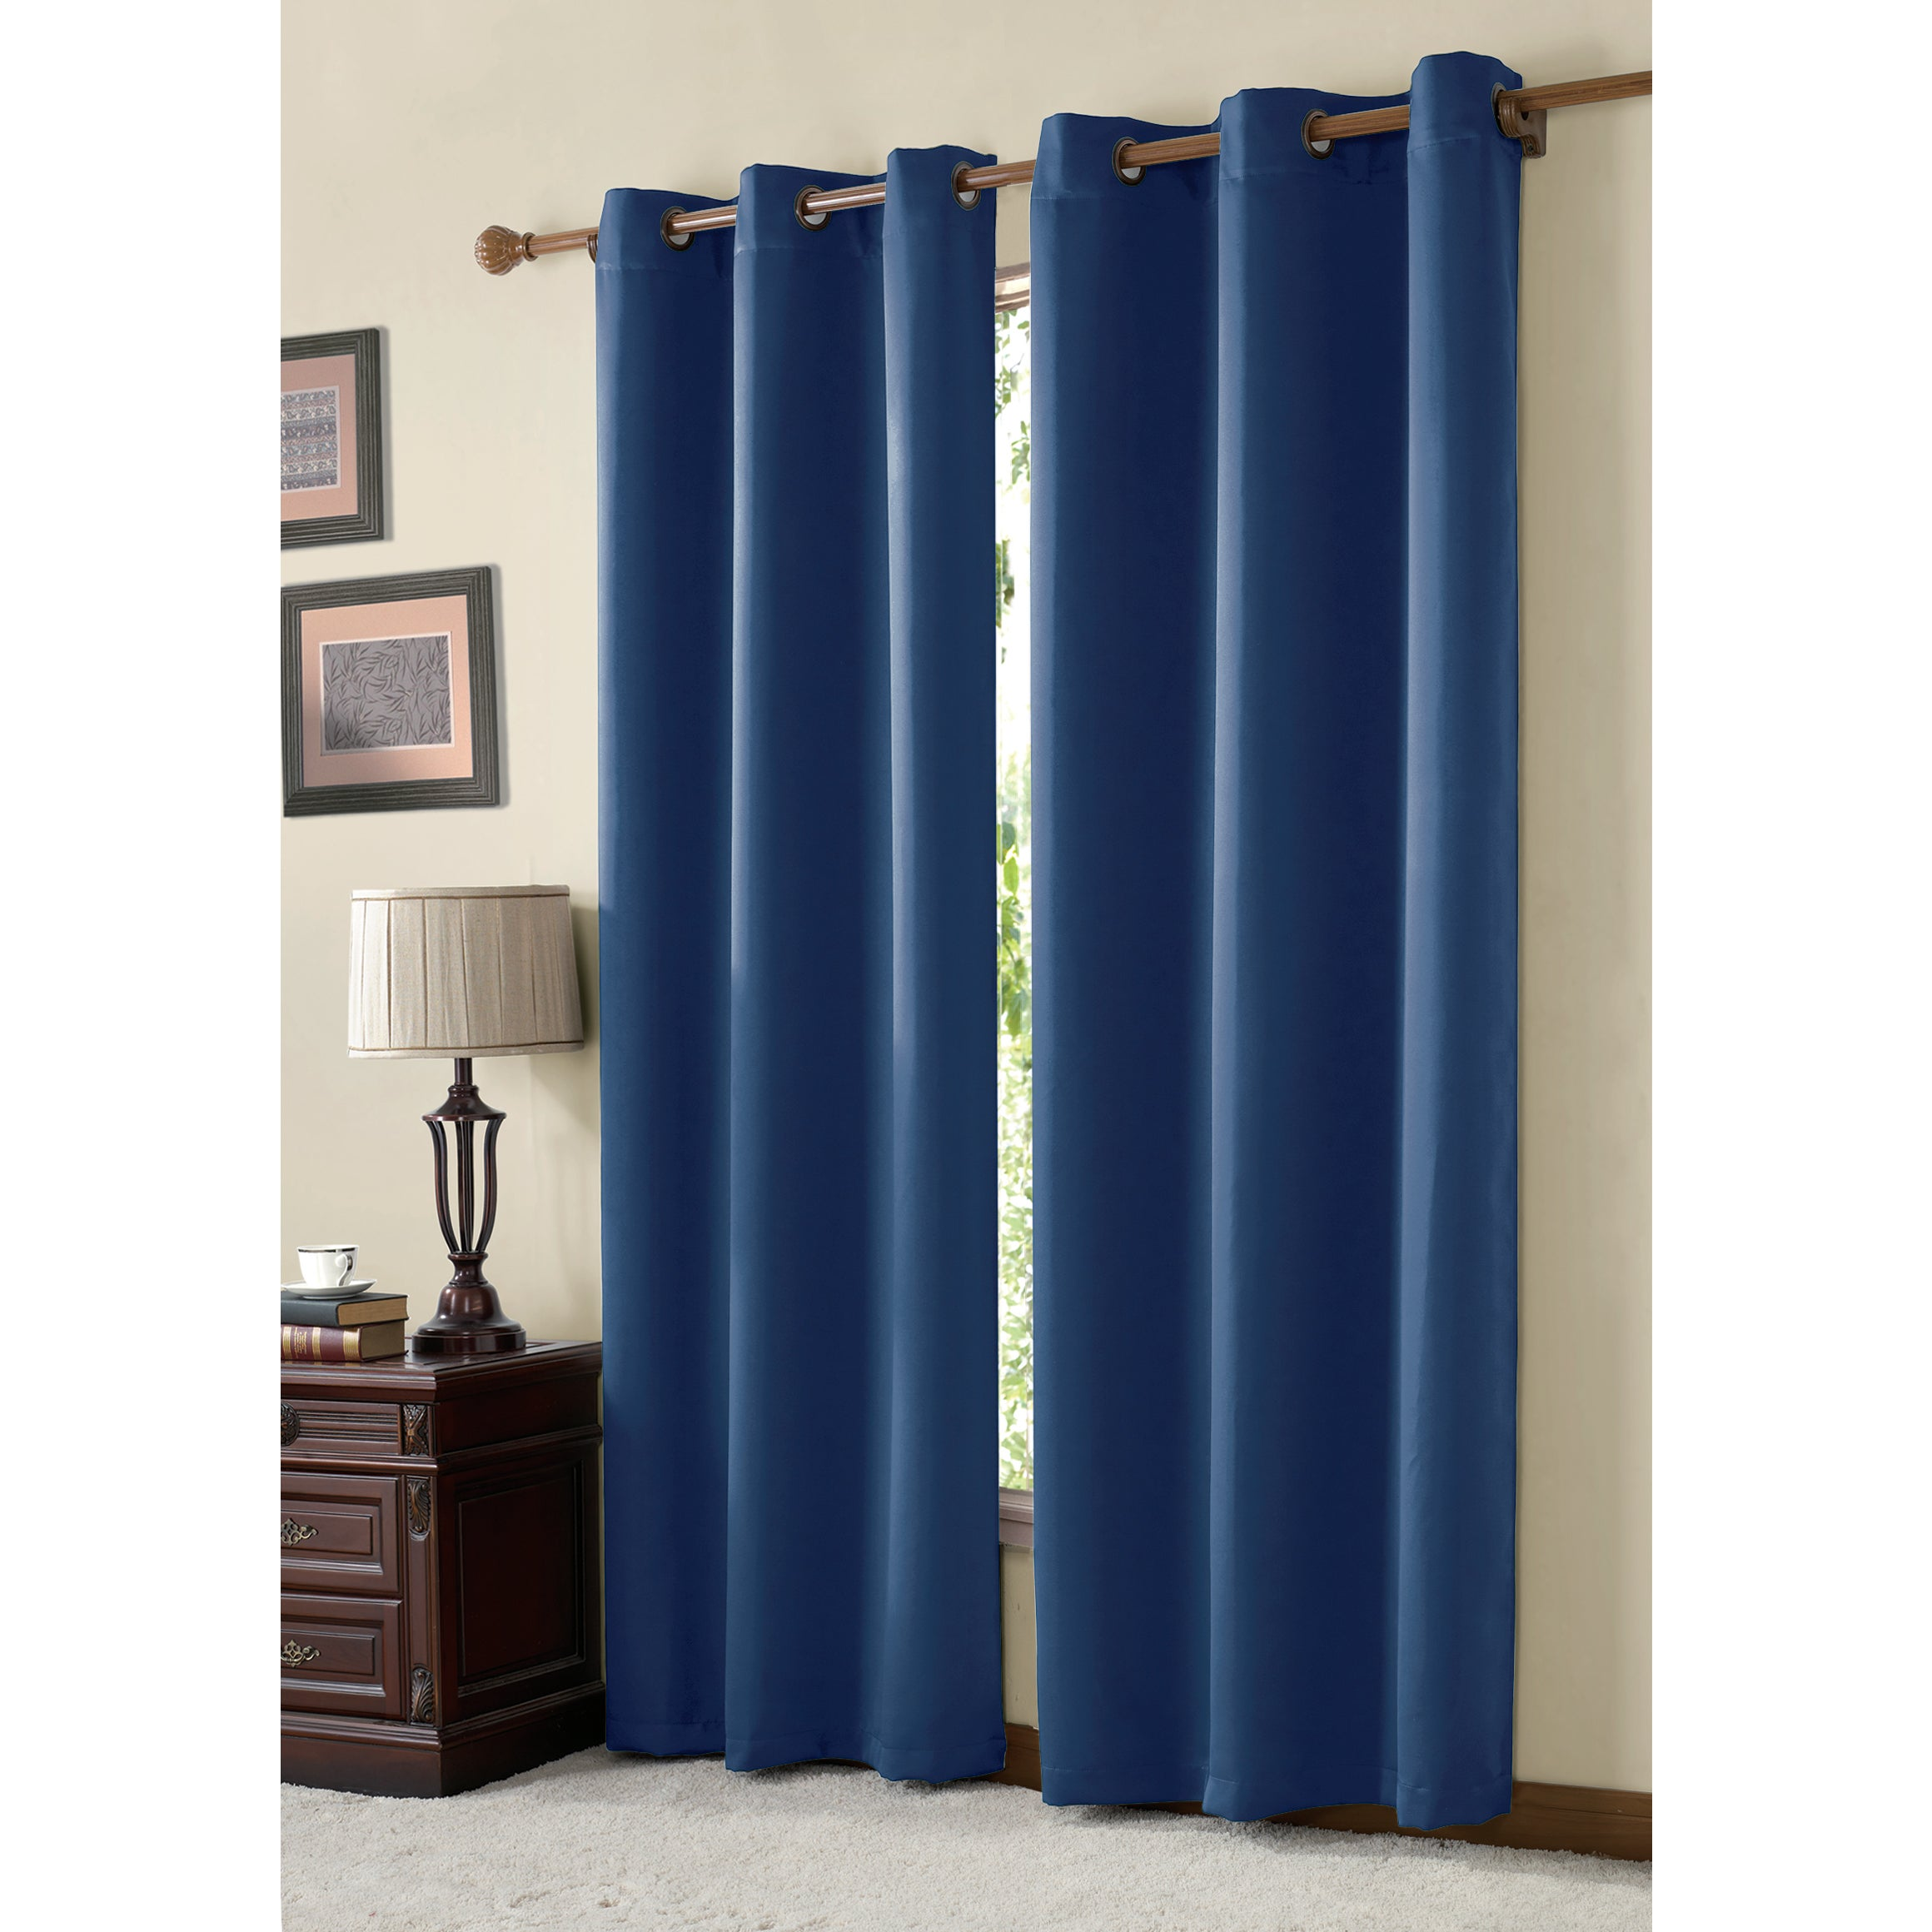 VCNY McKenzie Twill Curtain Panel - Free Shipping On Orders Over $45 -  Overstock.com - 17161439